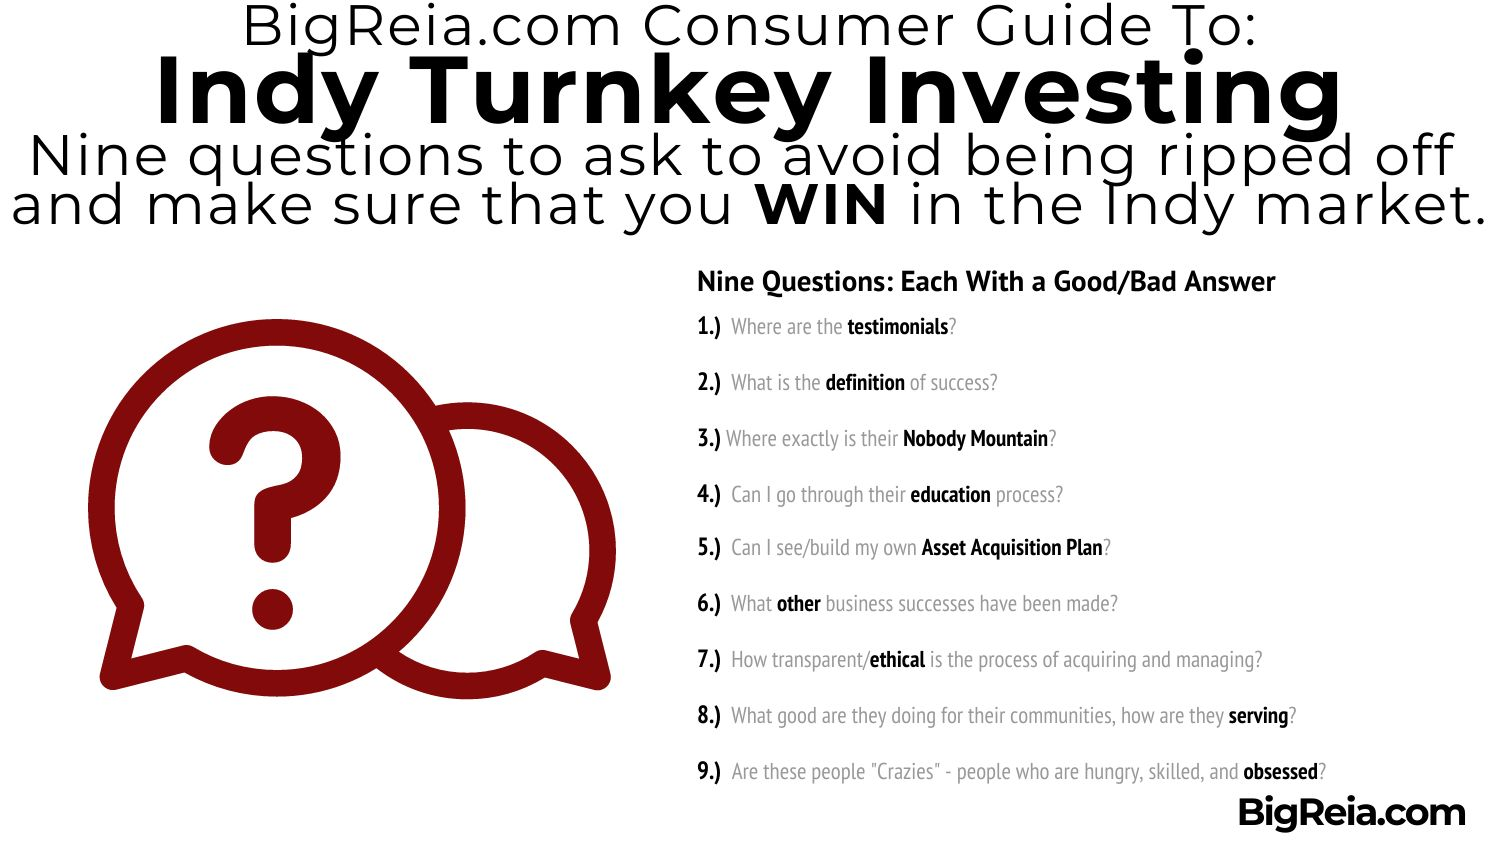 Nine questions to avoid Indiana turnkey scams